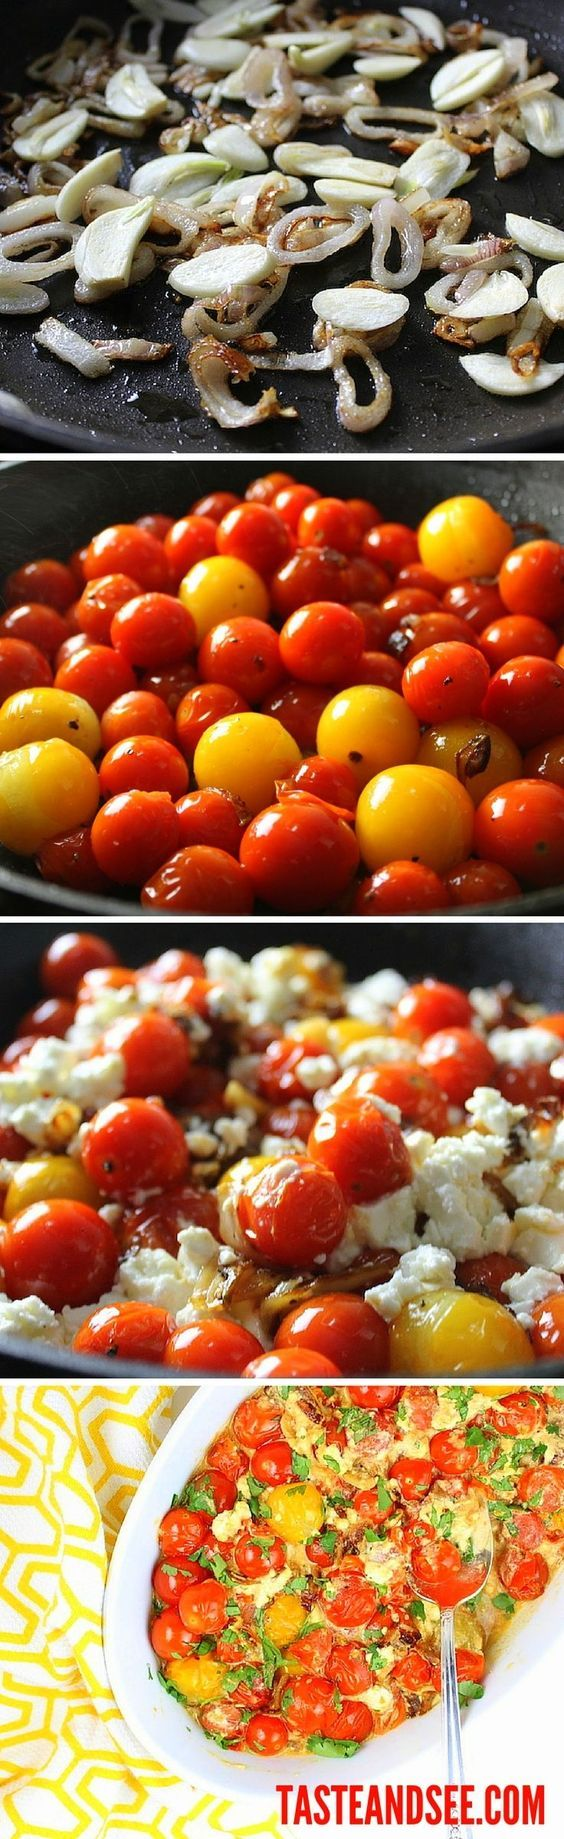 Sweet Cherry Tomatoes with French Feta: Salty, tomato-sweet, cheesy, creamy goodness ready in only 15 minutes!  The perfect side or appetizer with French feta, shallots, garlic, and cherry tomatoes. #tomatoes http://tasteandsee.com